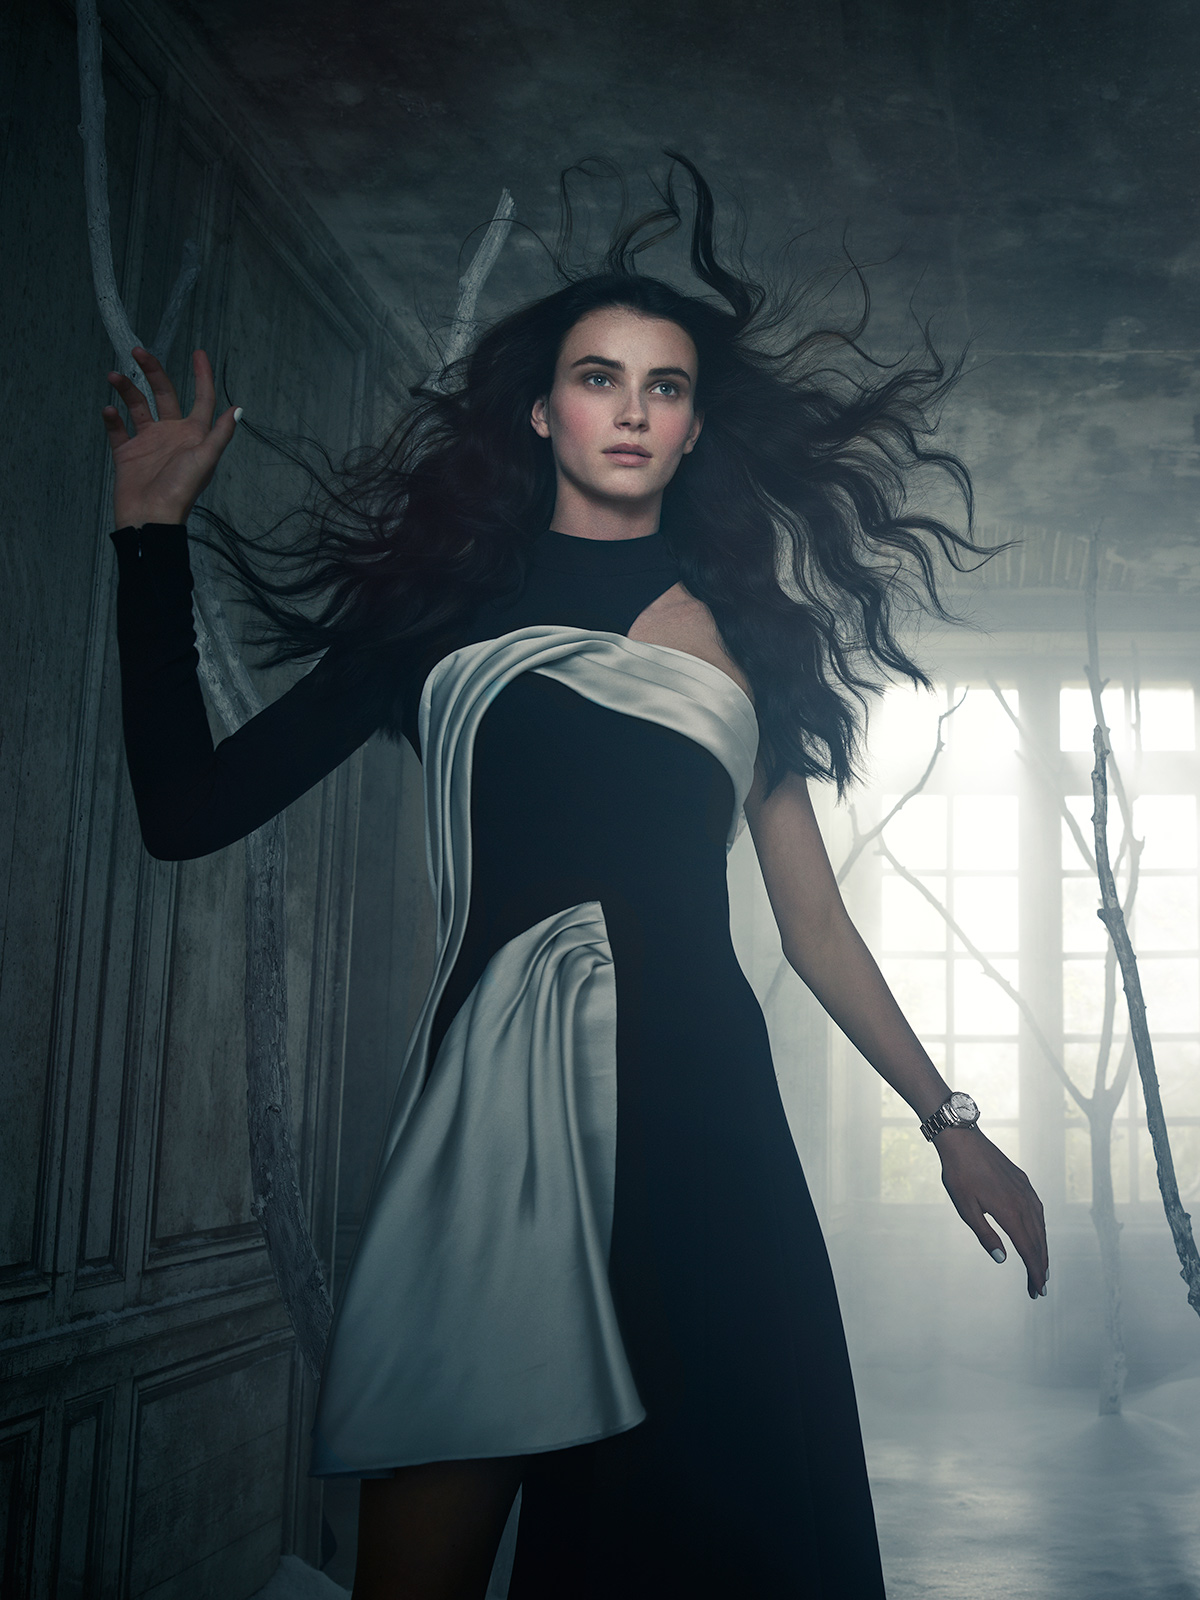 Picture of a woman with long dark hair walking in a corridor with dead branches coming from the floor